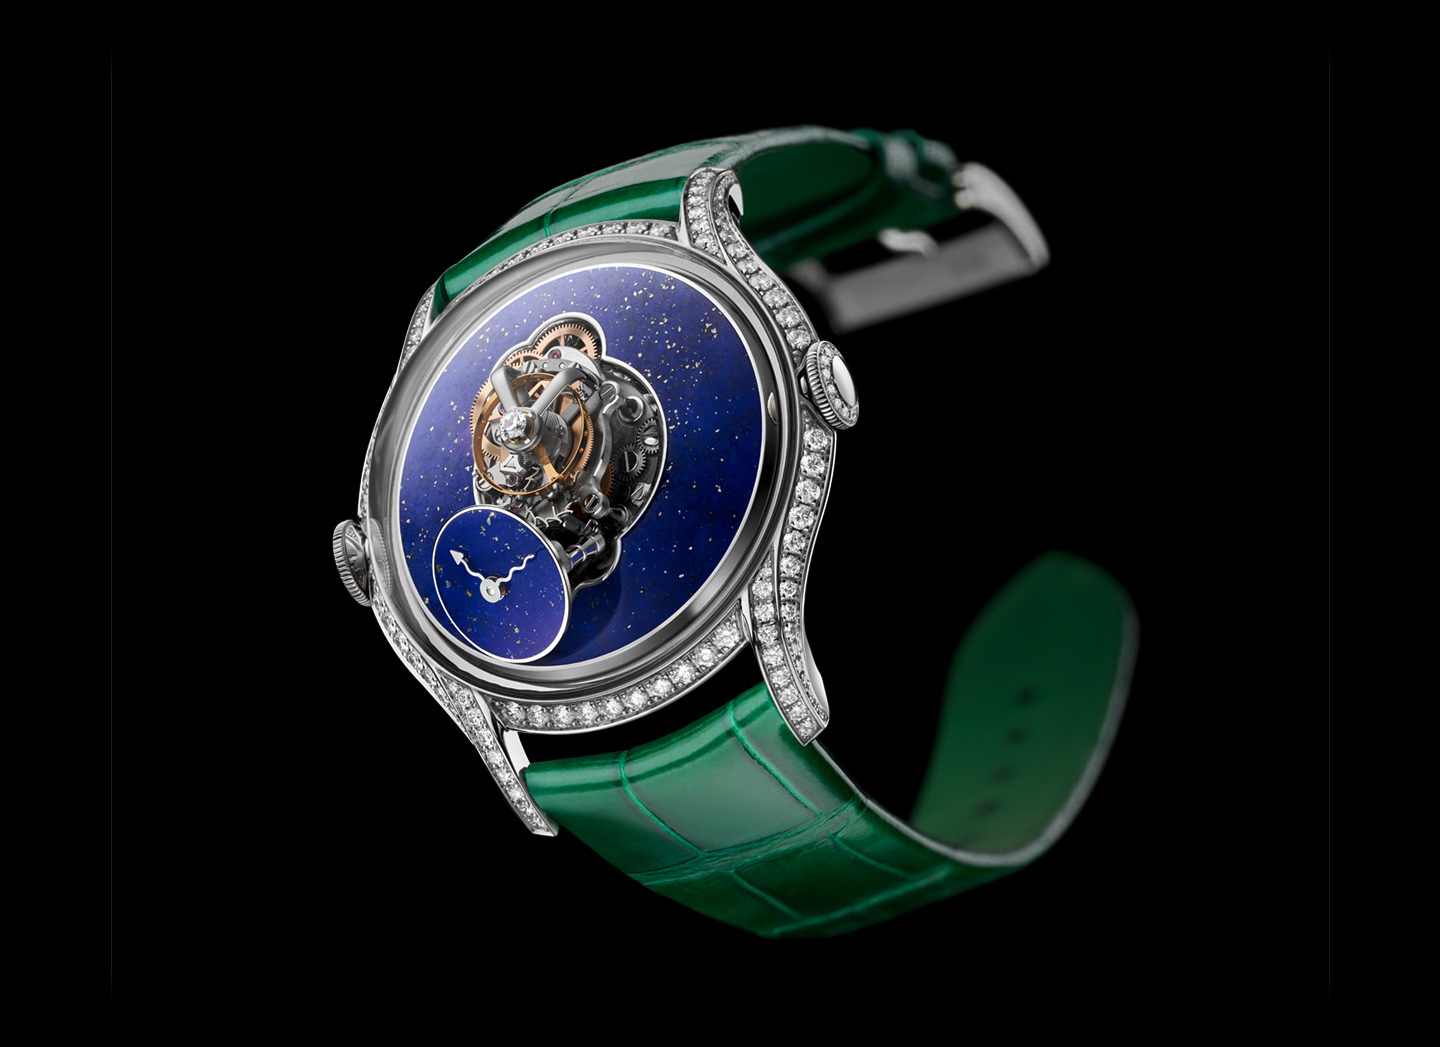 MB&F lm_flying_t_lapis_lazuli_3 - Europa Star watch magazine 2020